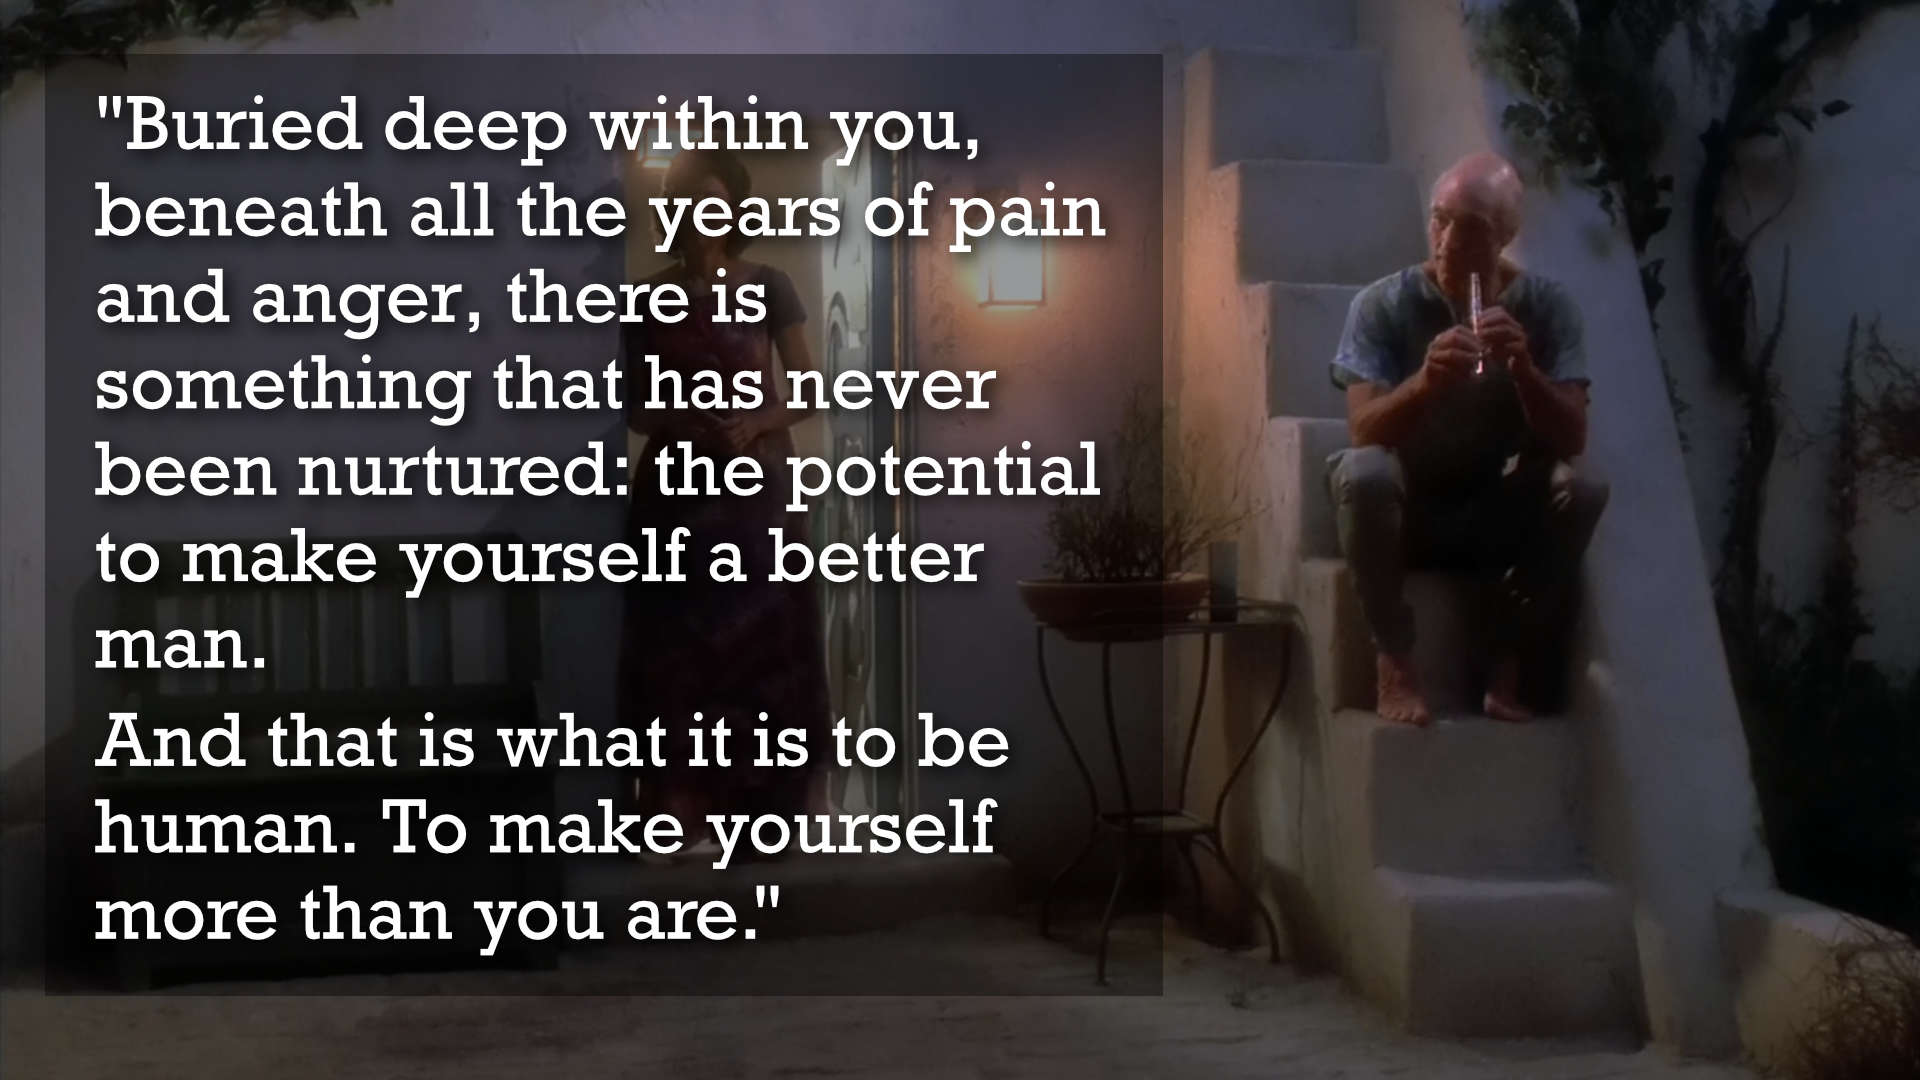 Picard's view on taking risk and how it offers potential for you to be better.